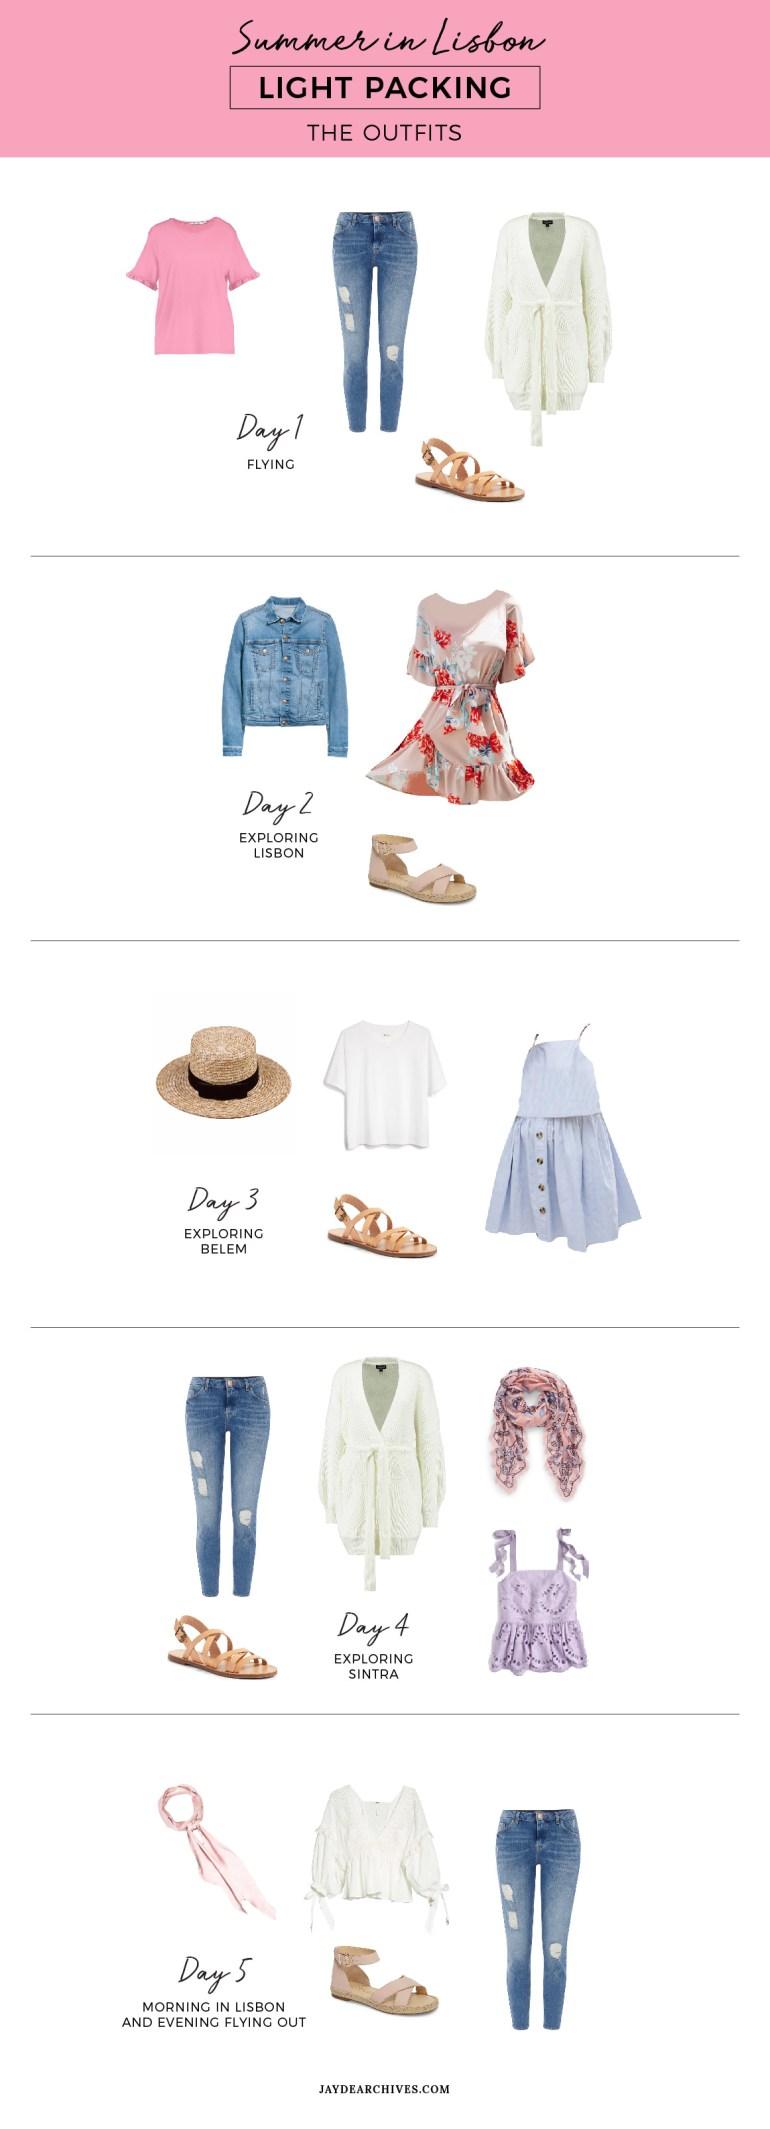 Summer Light Packing for Lisbon Outfits